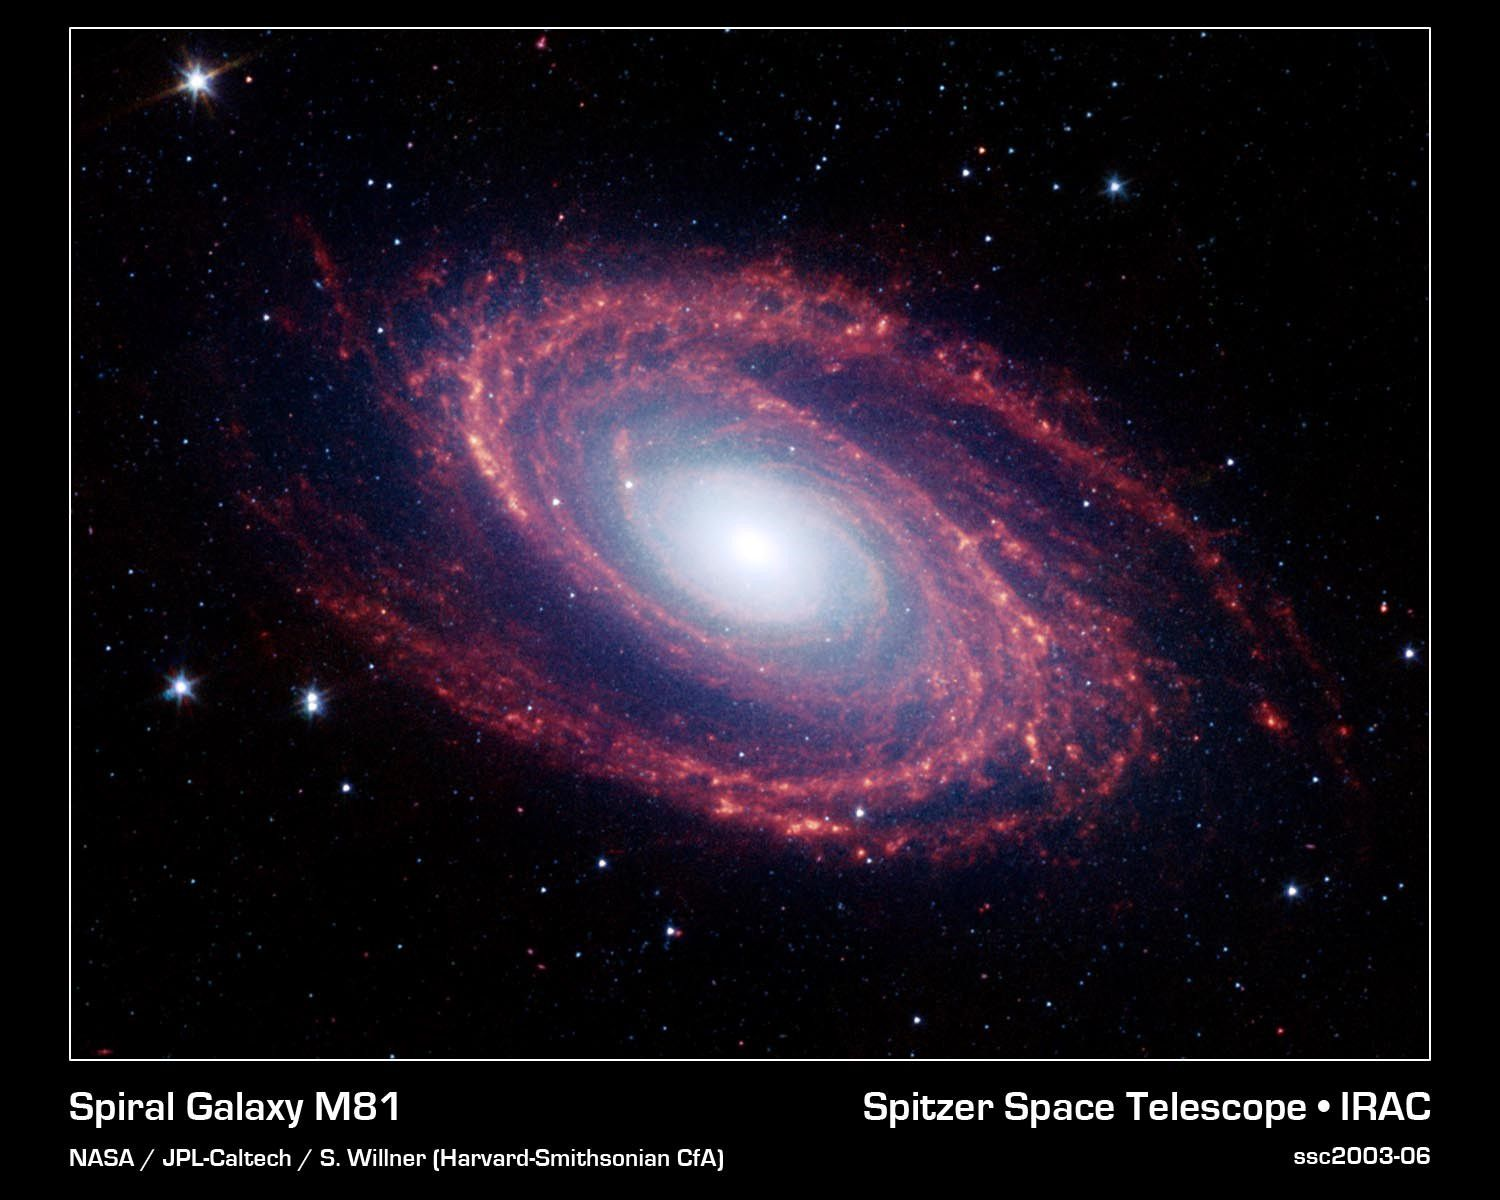 The M81 galaxy as observed by the Spitzer space telescope. Credit NASA